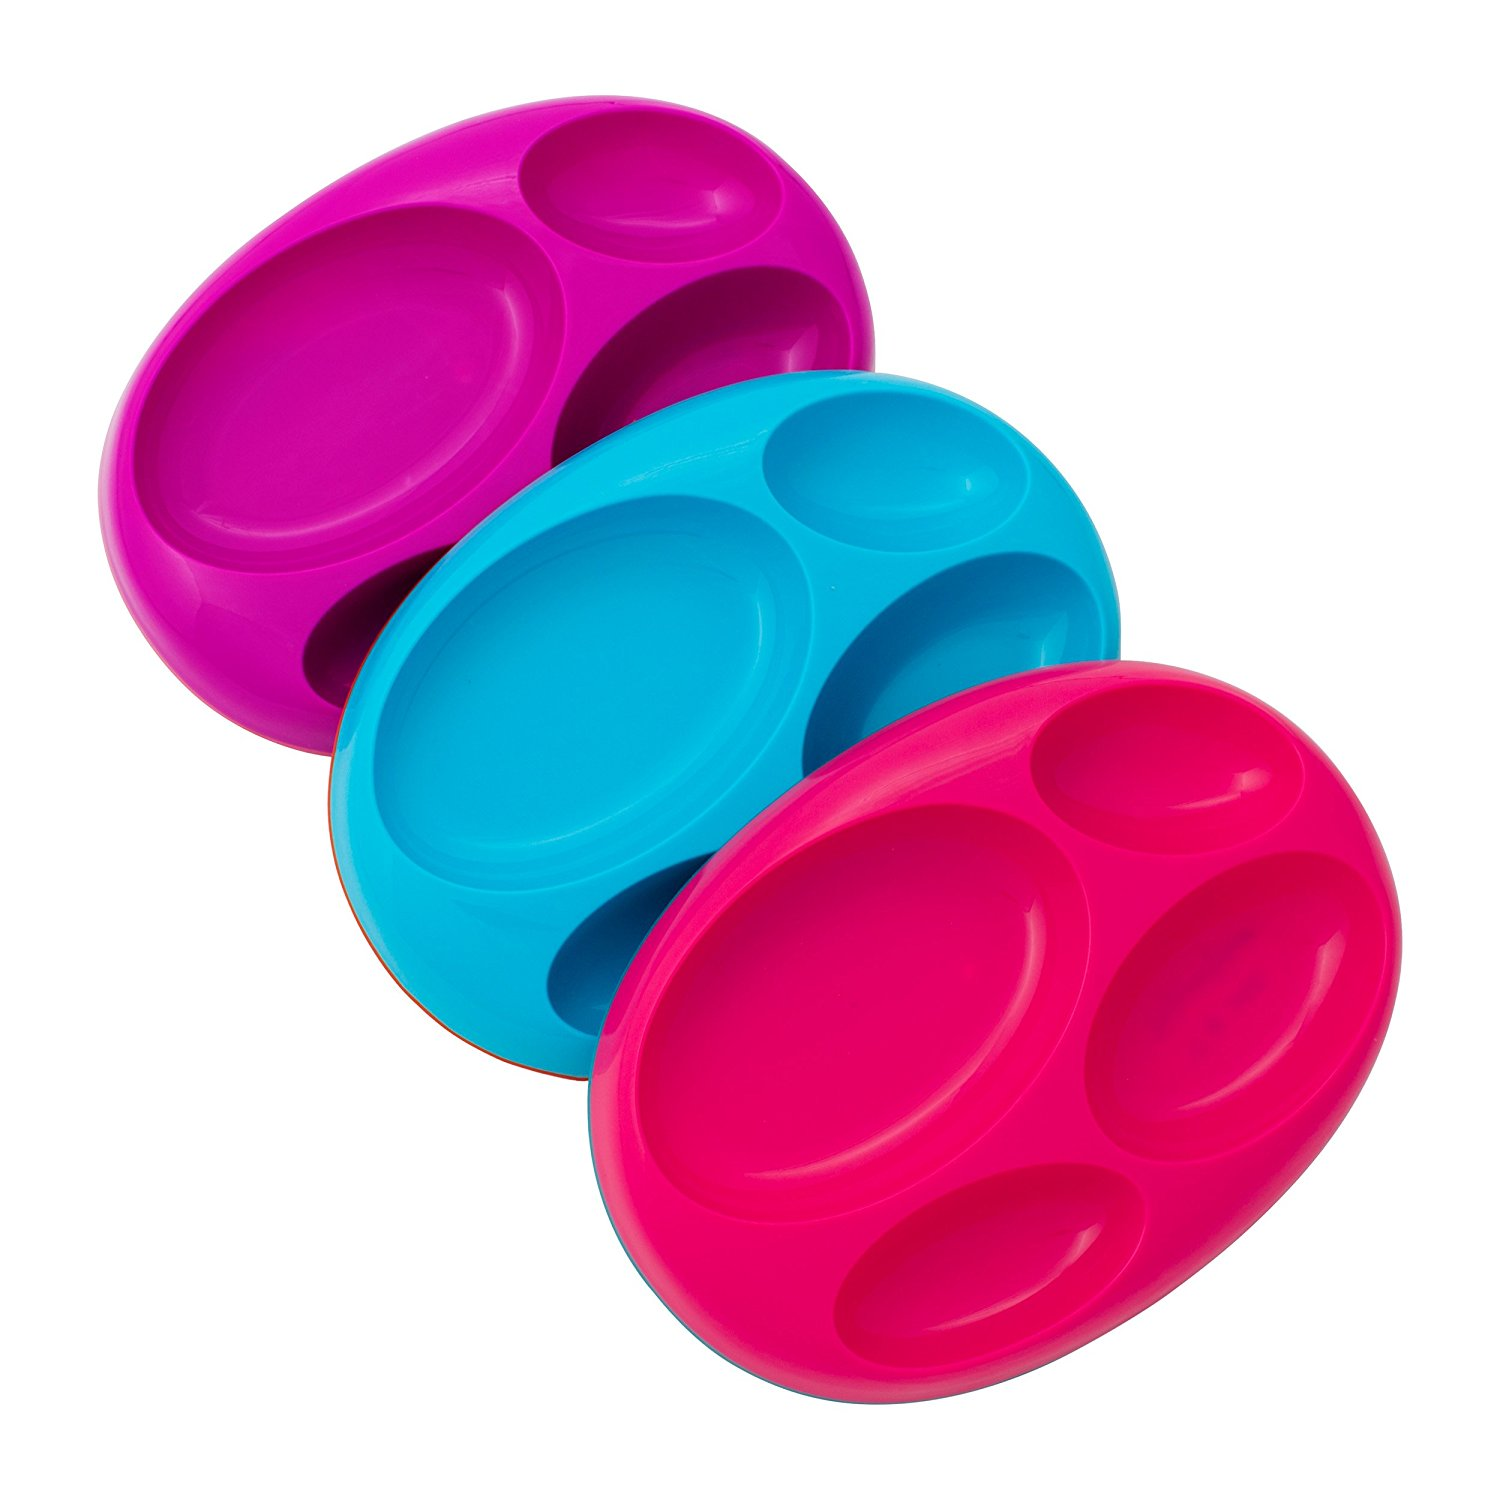 Brand New  Platter Edgeless Nonskid Divided Plate, Purple/Blue/pink, High-quality